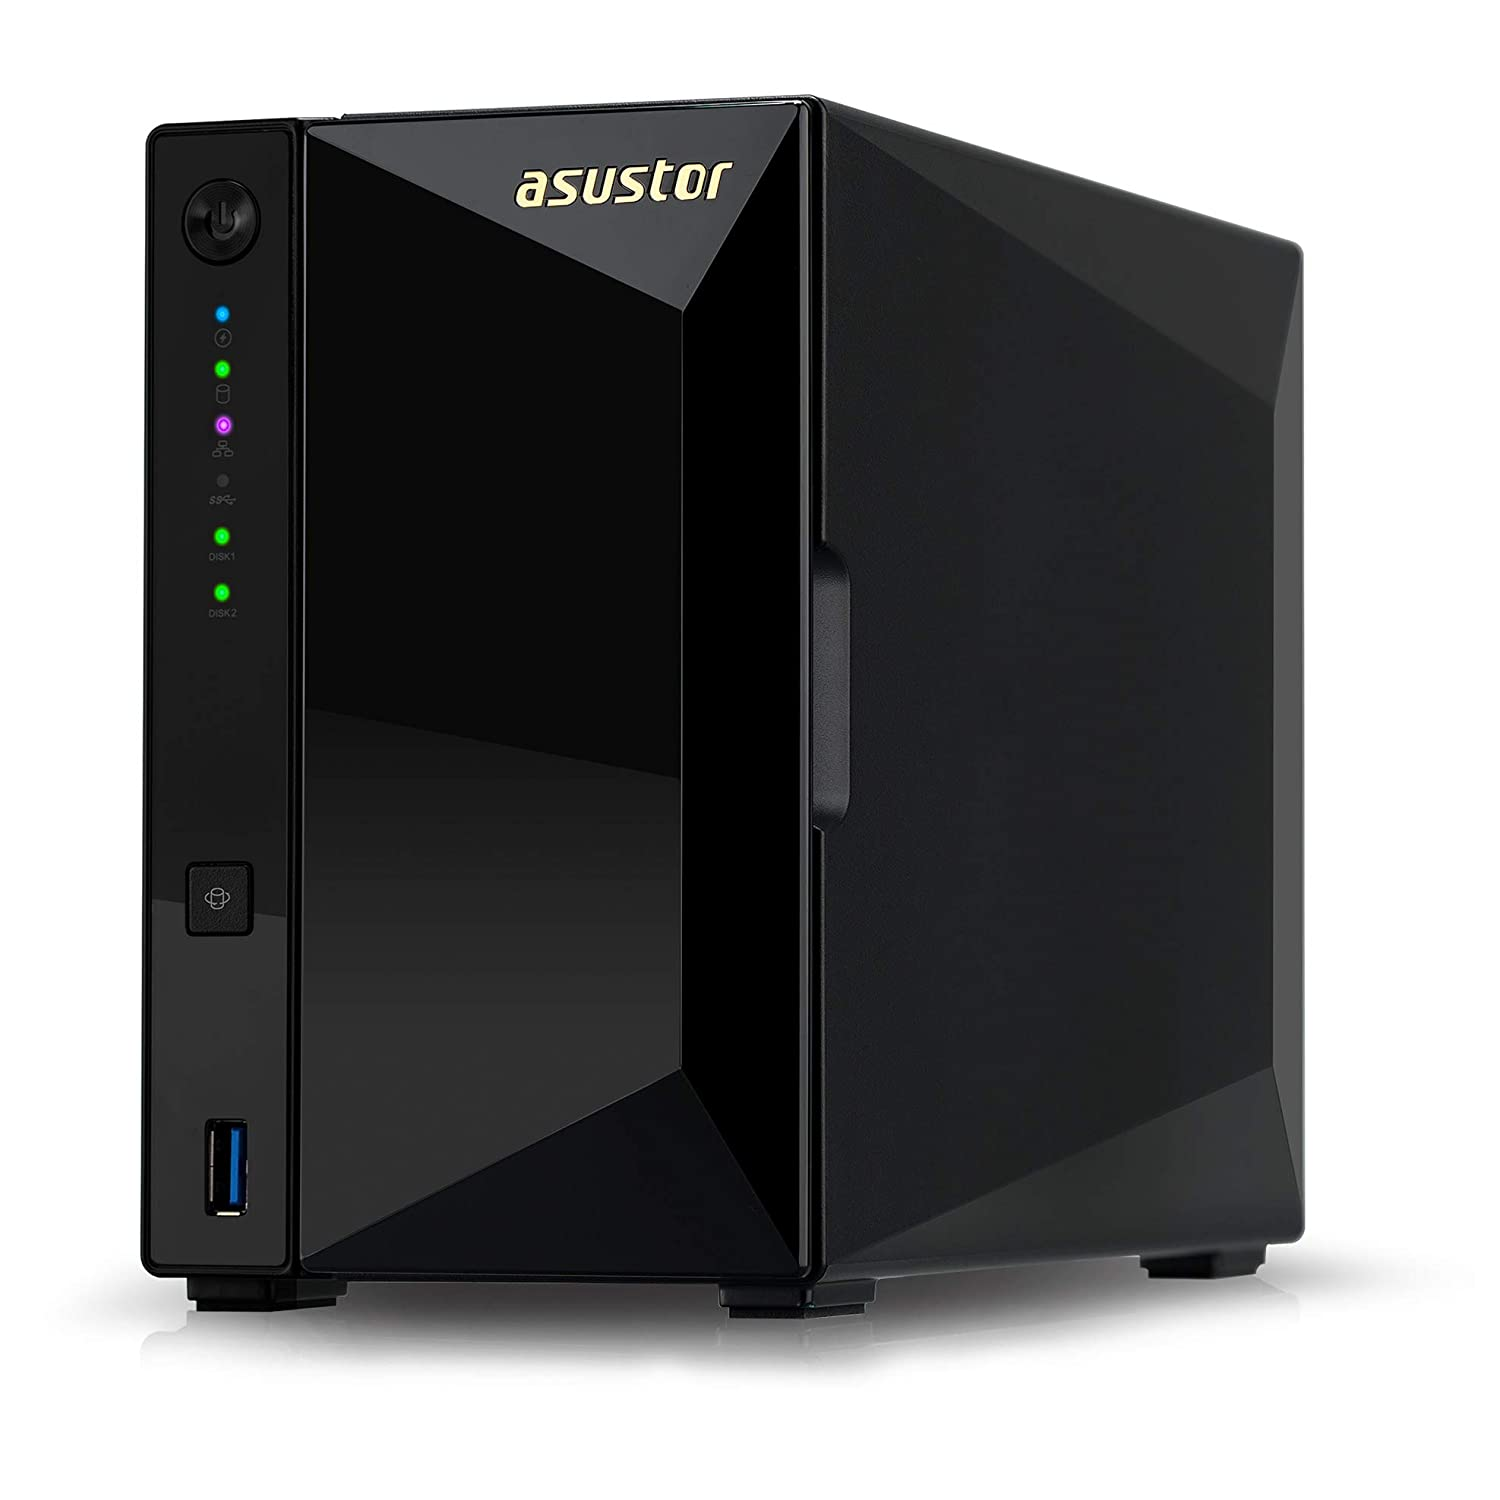 Asustor AS4002T | Network Attached Storage + Free exFAT License | Personal Private Cloud | Home Media Server | 10GbE Port, 1.6GHz Dual-Core, 2GB RAM DDR4 (2 Bay NAS)